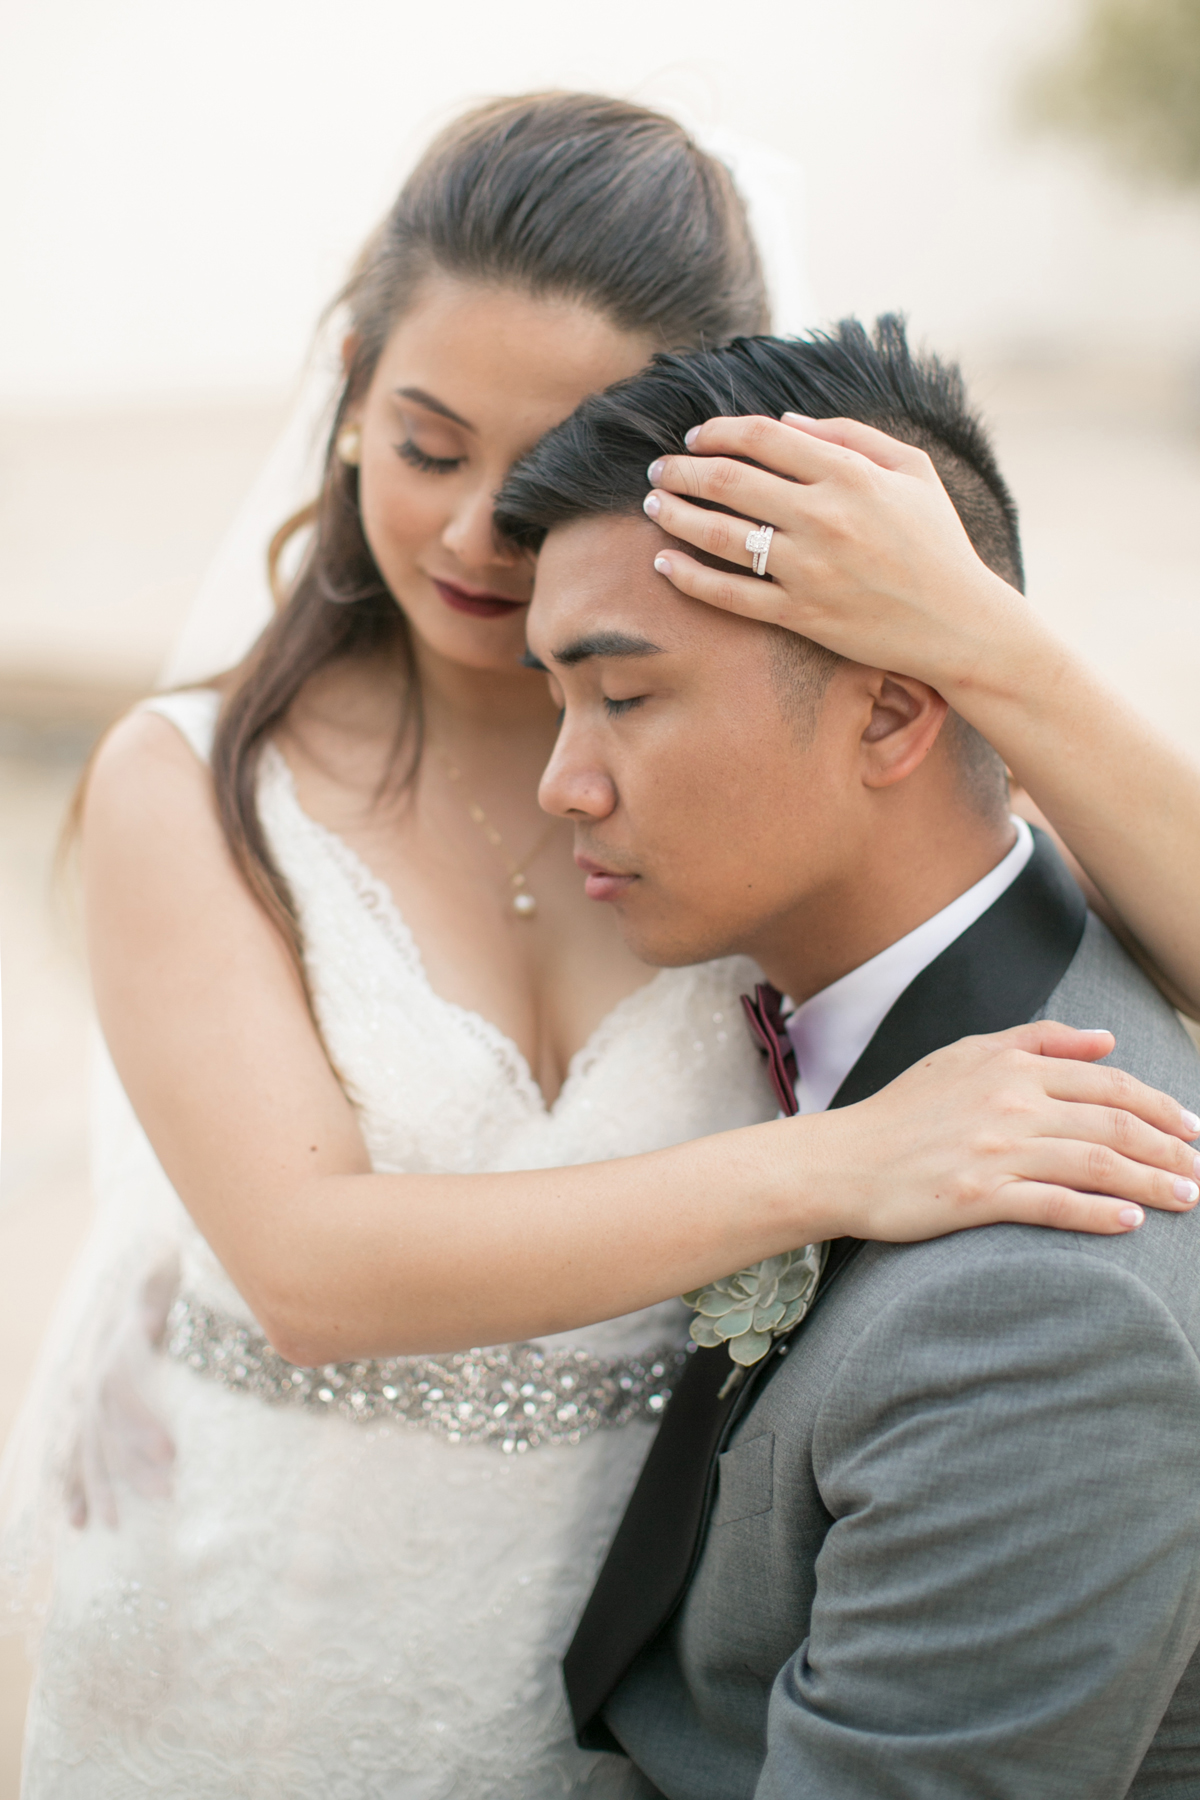 wedding-tips-from-a-wedding-photographer-cherish-your-partner